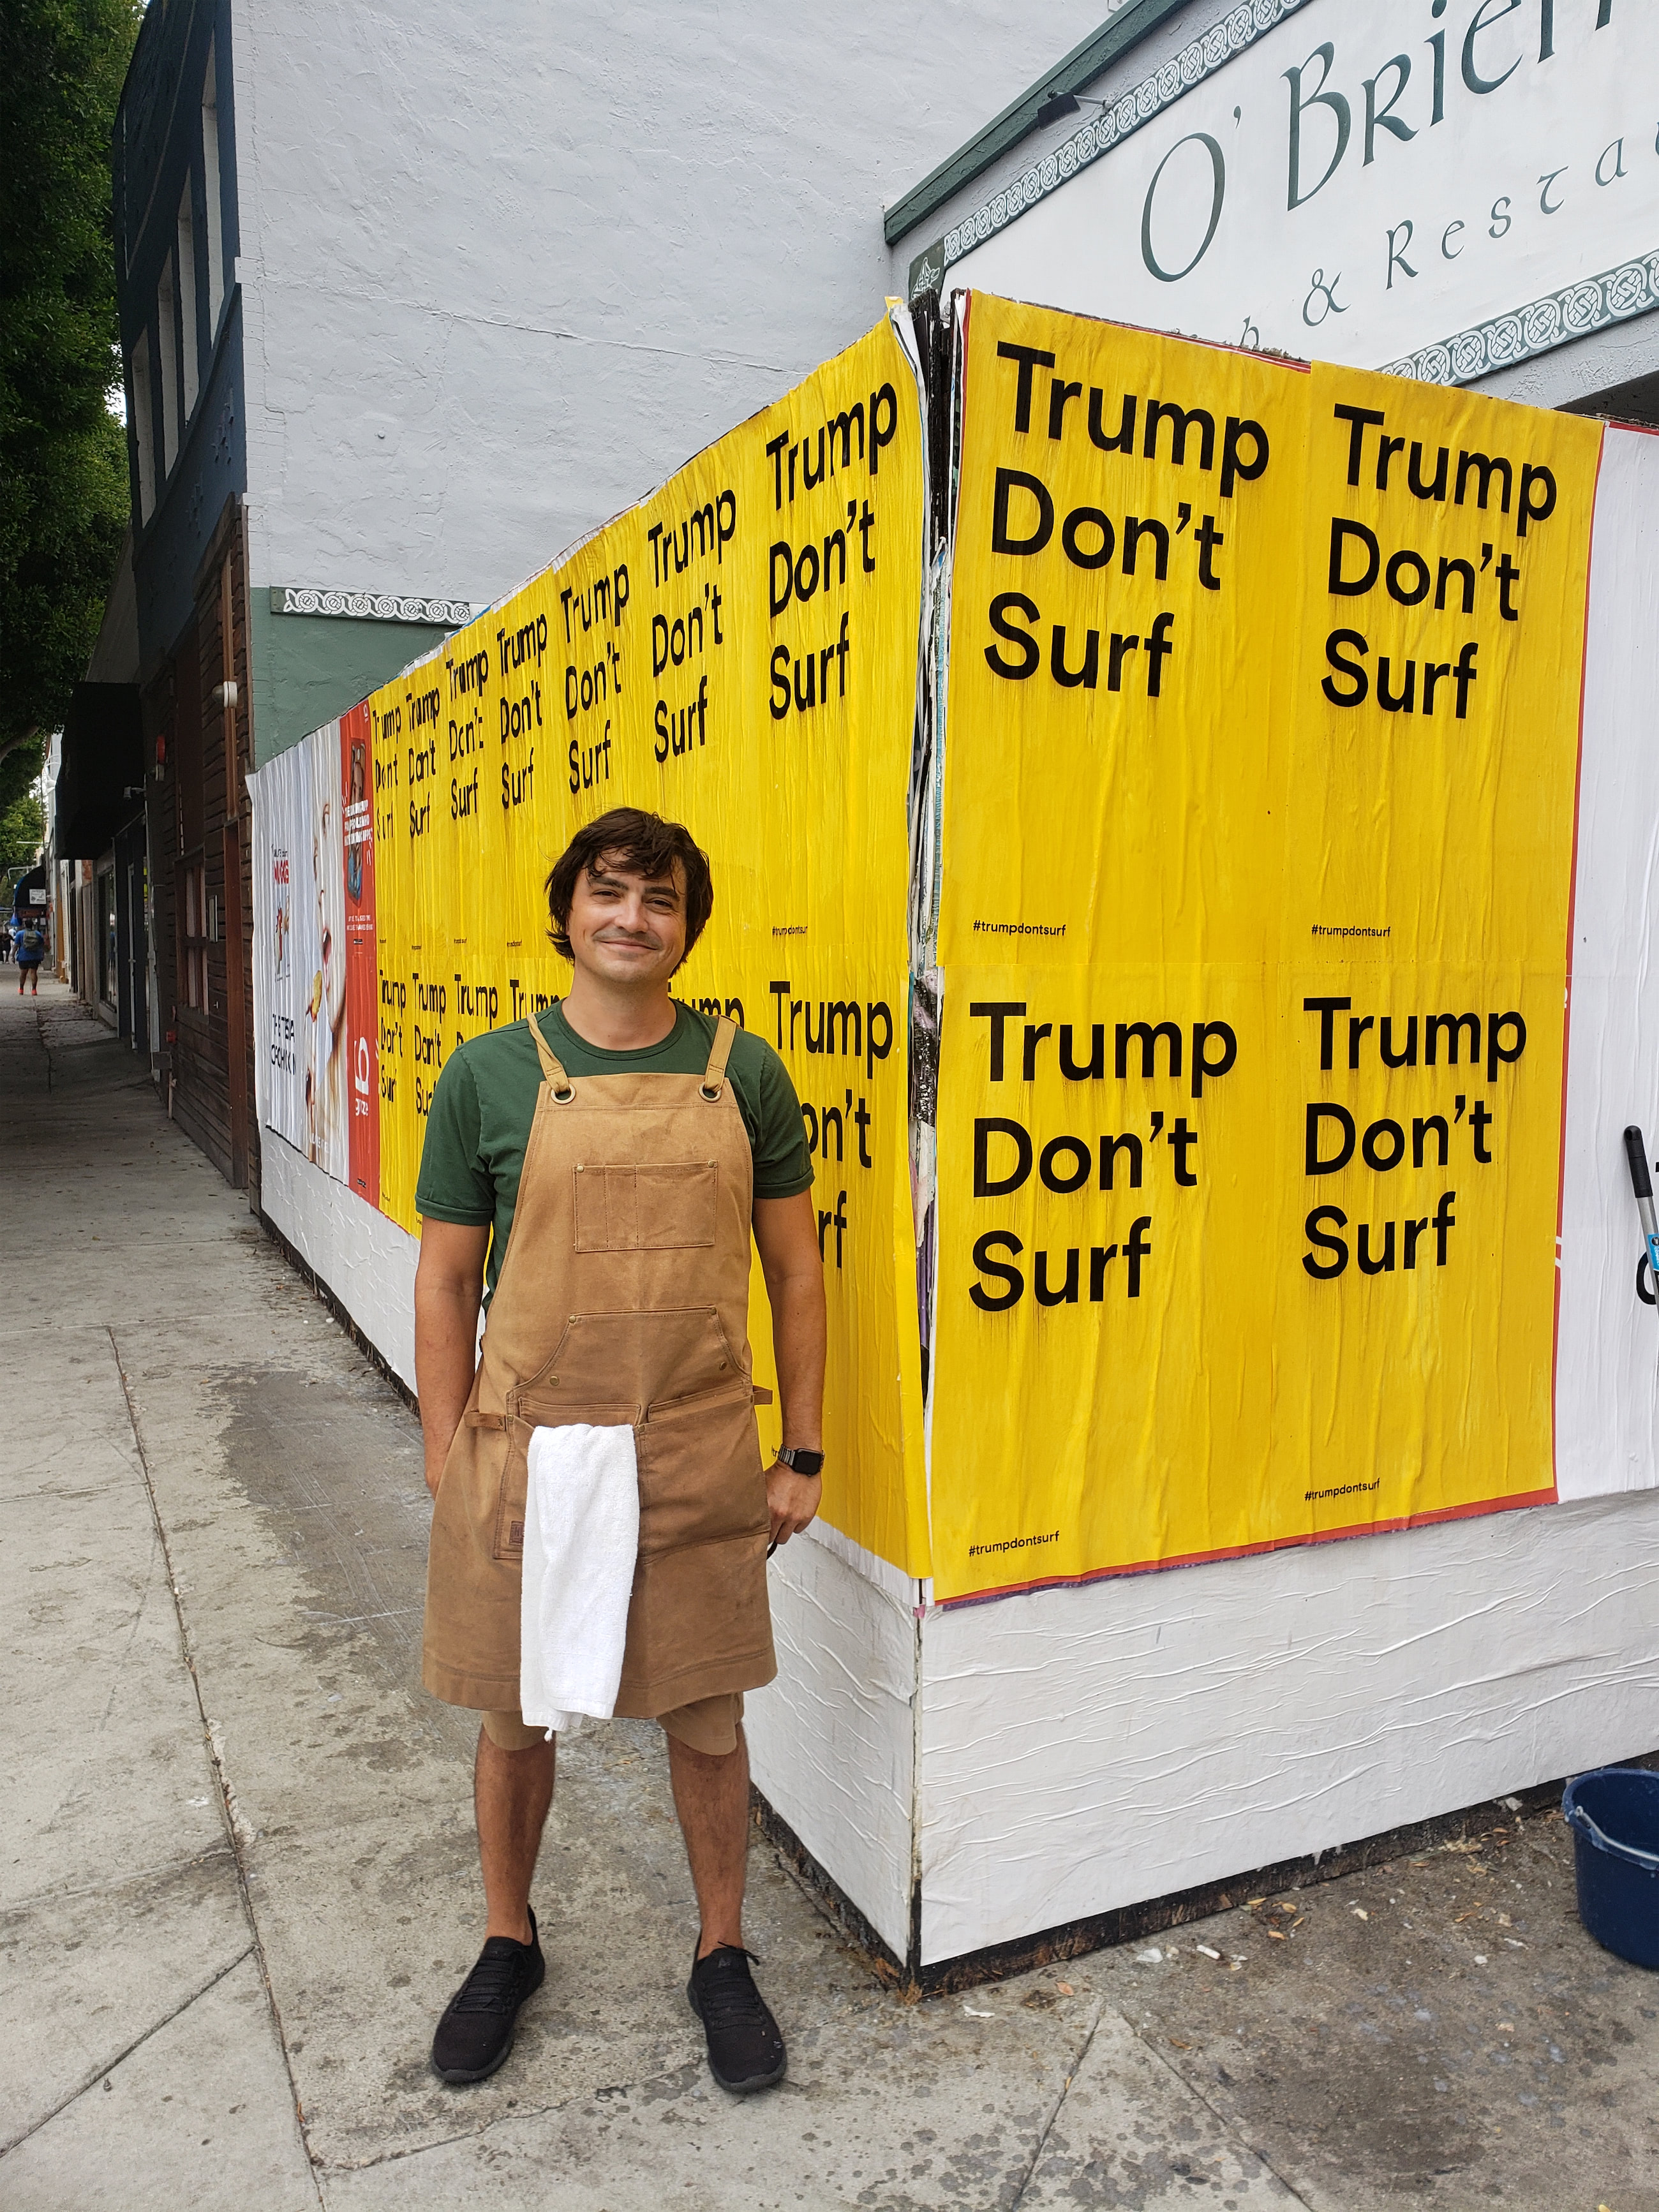 Trump Don't Surf Berry standing proud